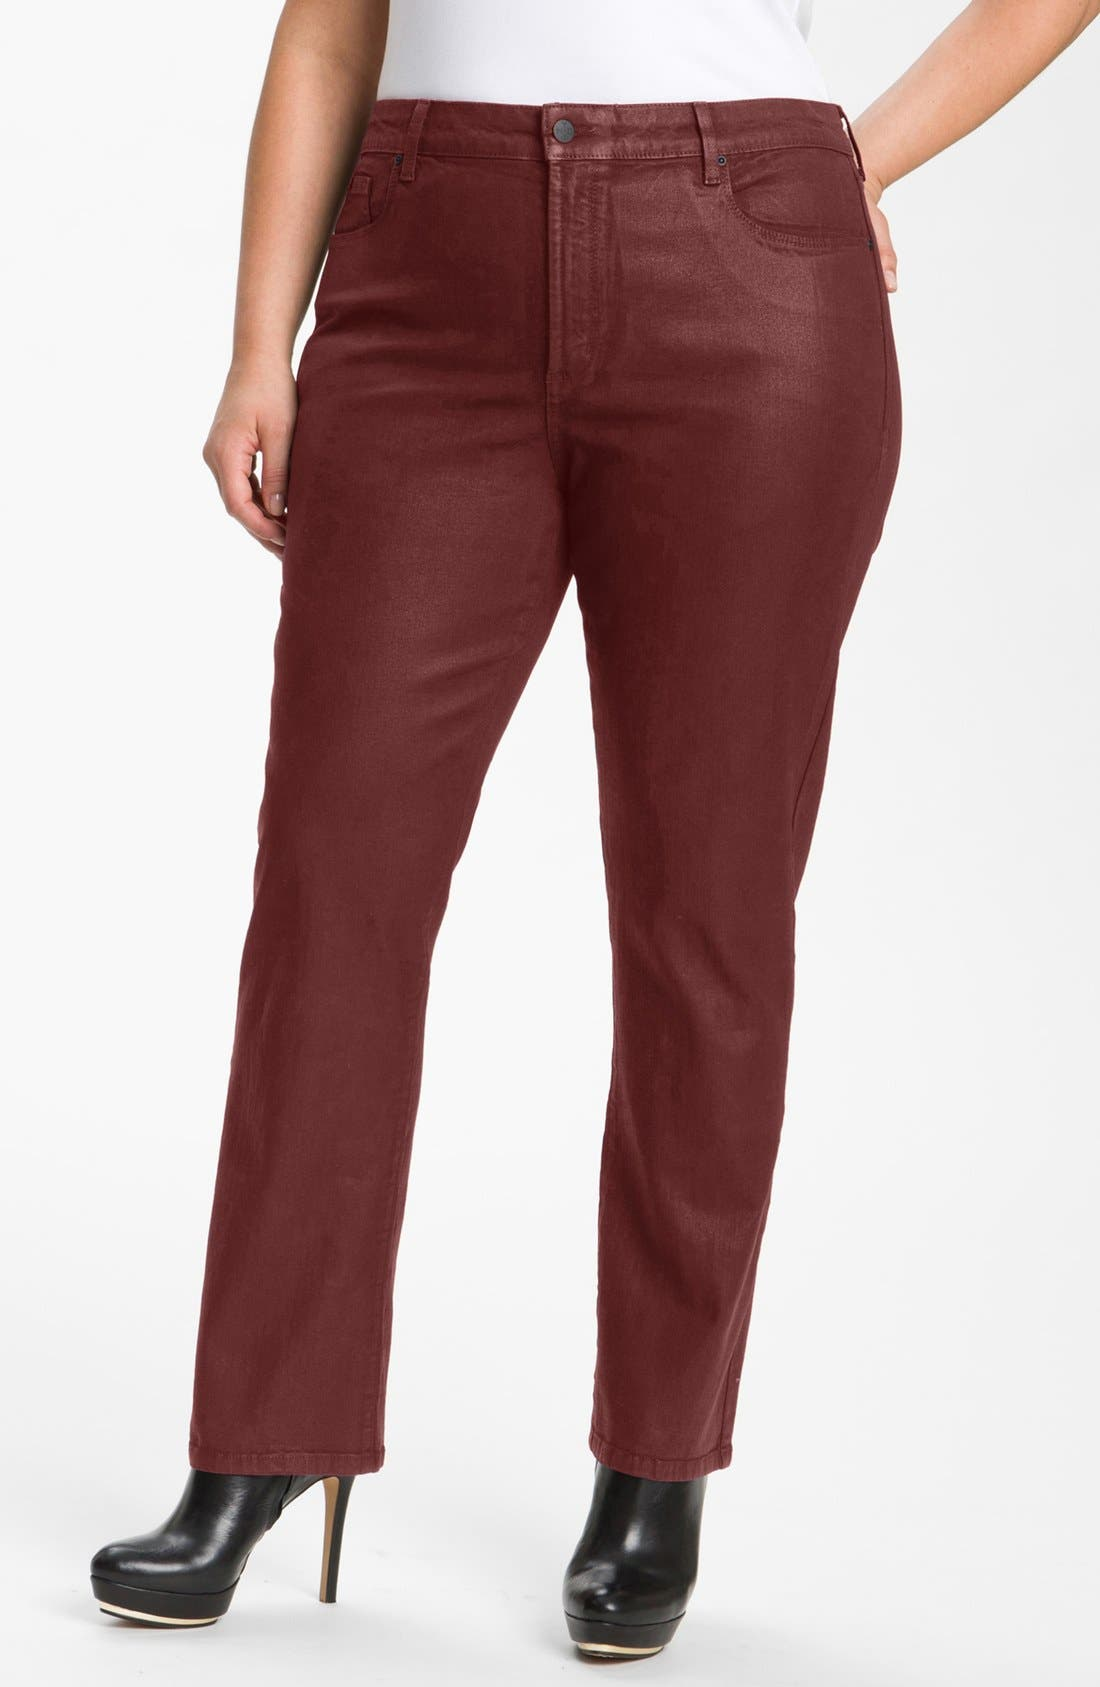 Main Image - NYDJ 'Sheri' Coated Stretch Skinny Jeans (Plus)